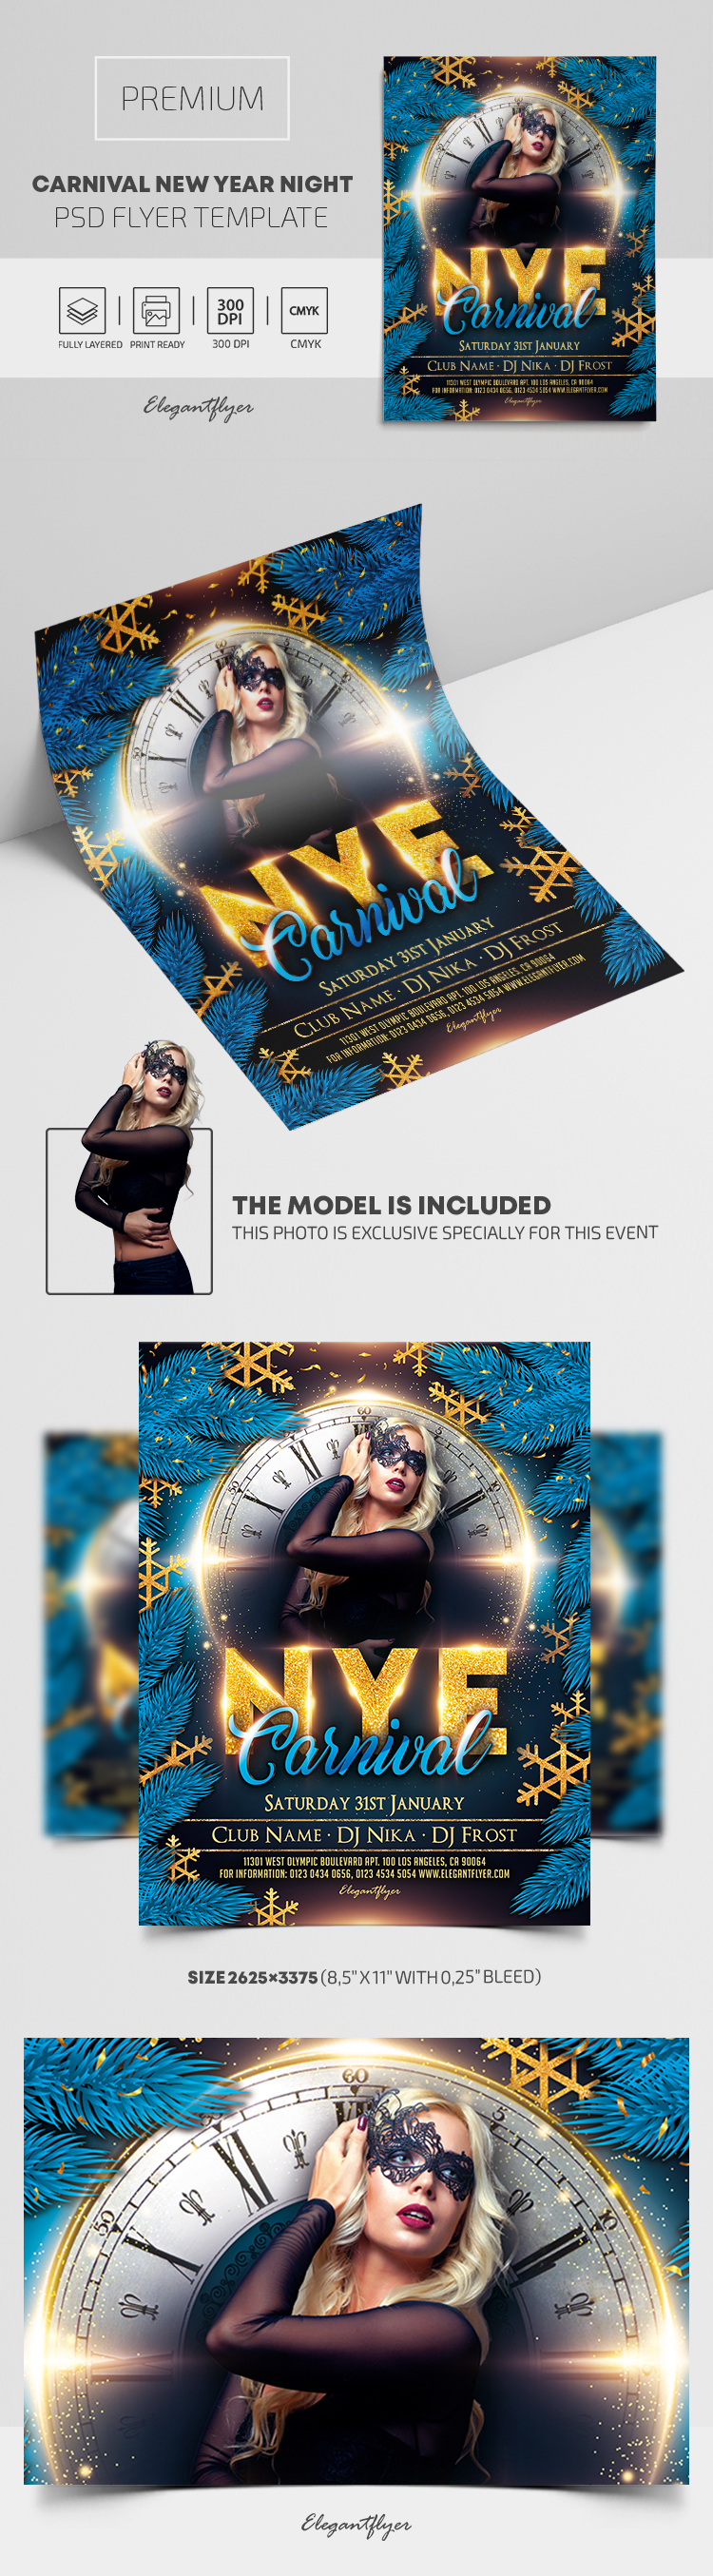 Carnival New Year Night – Premium PSD Flyer Template